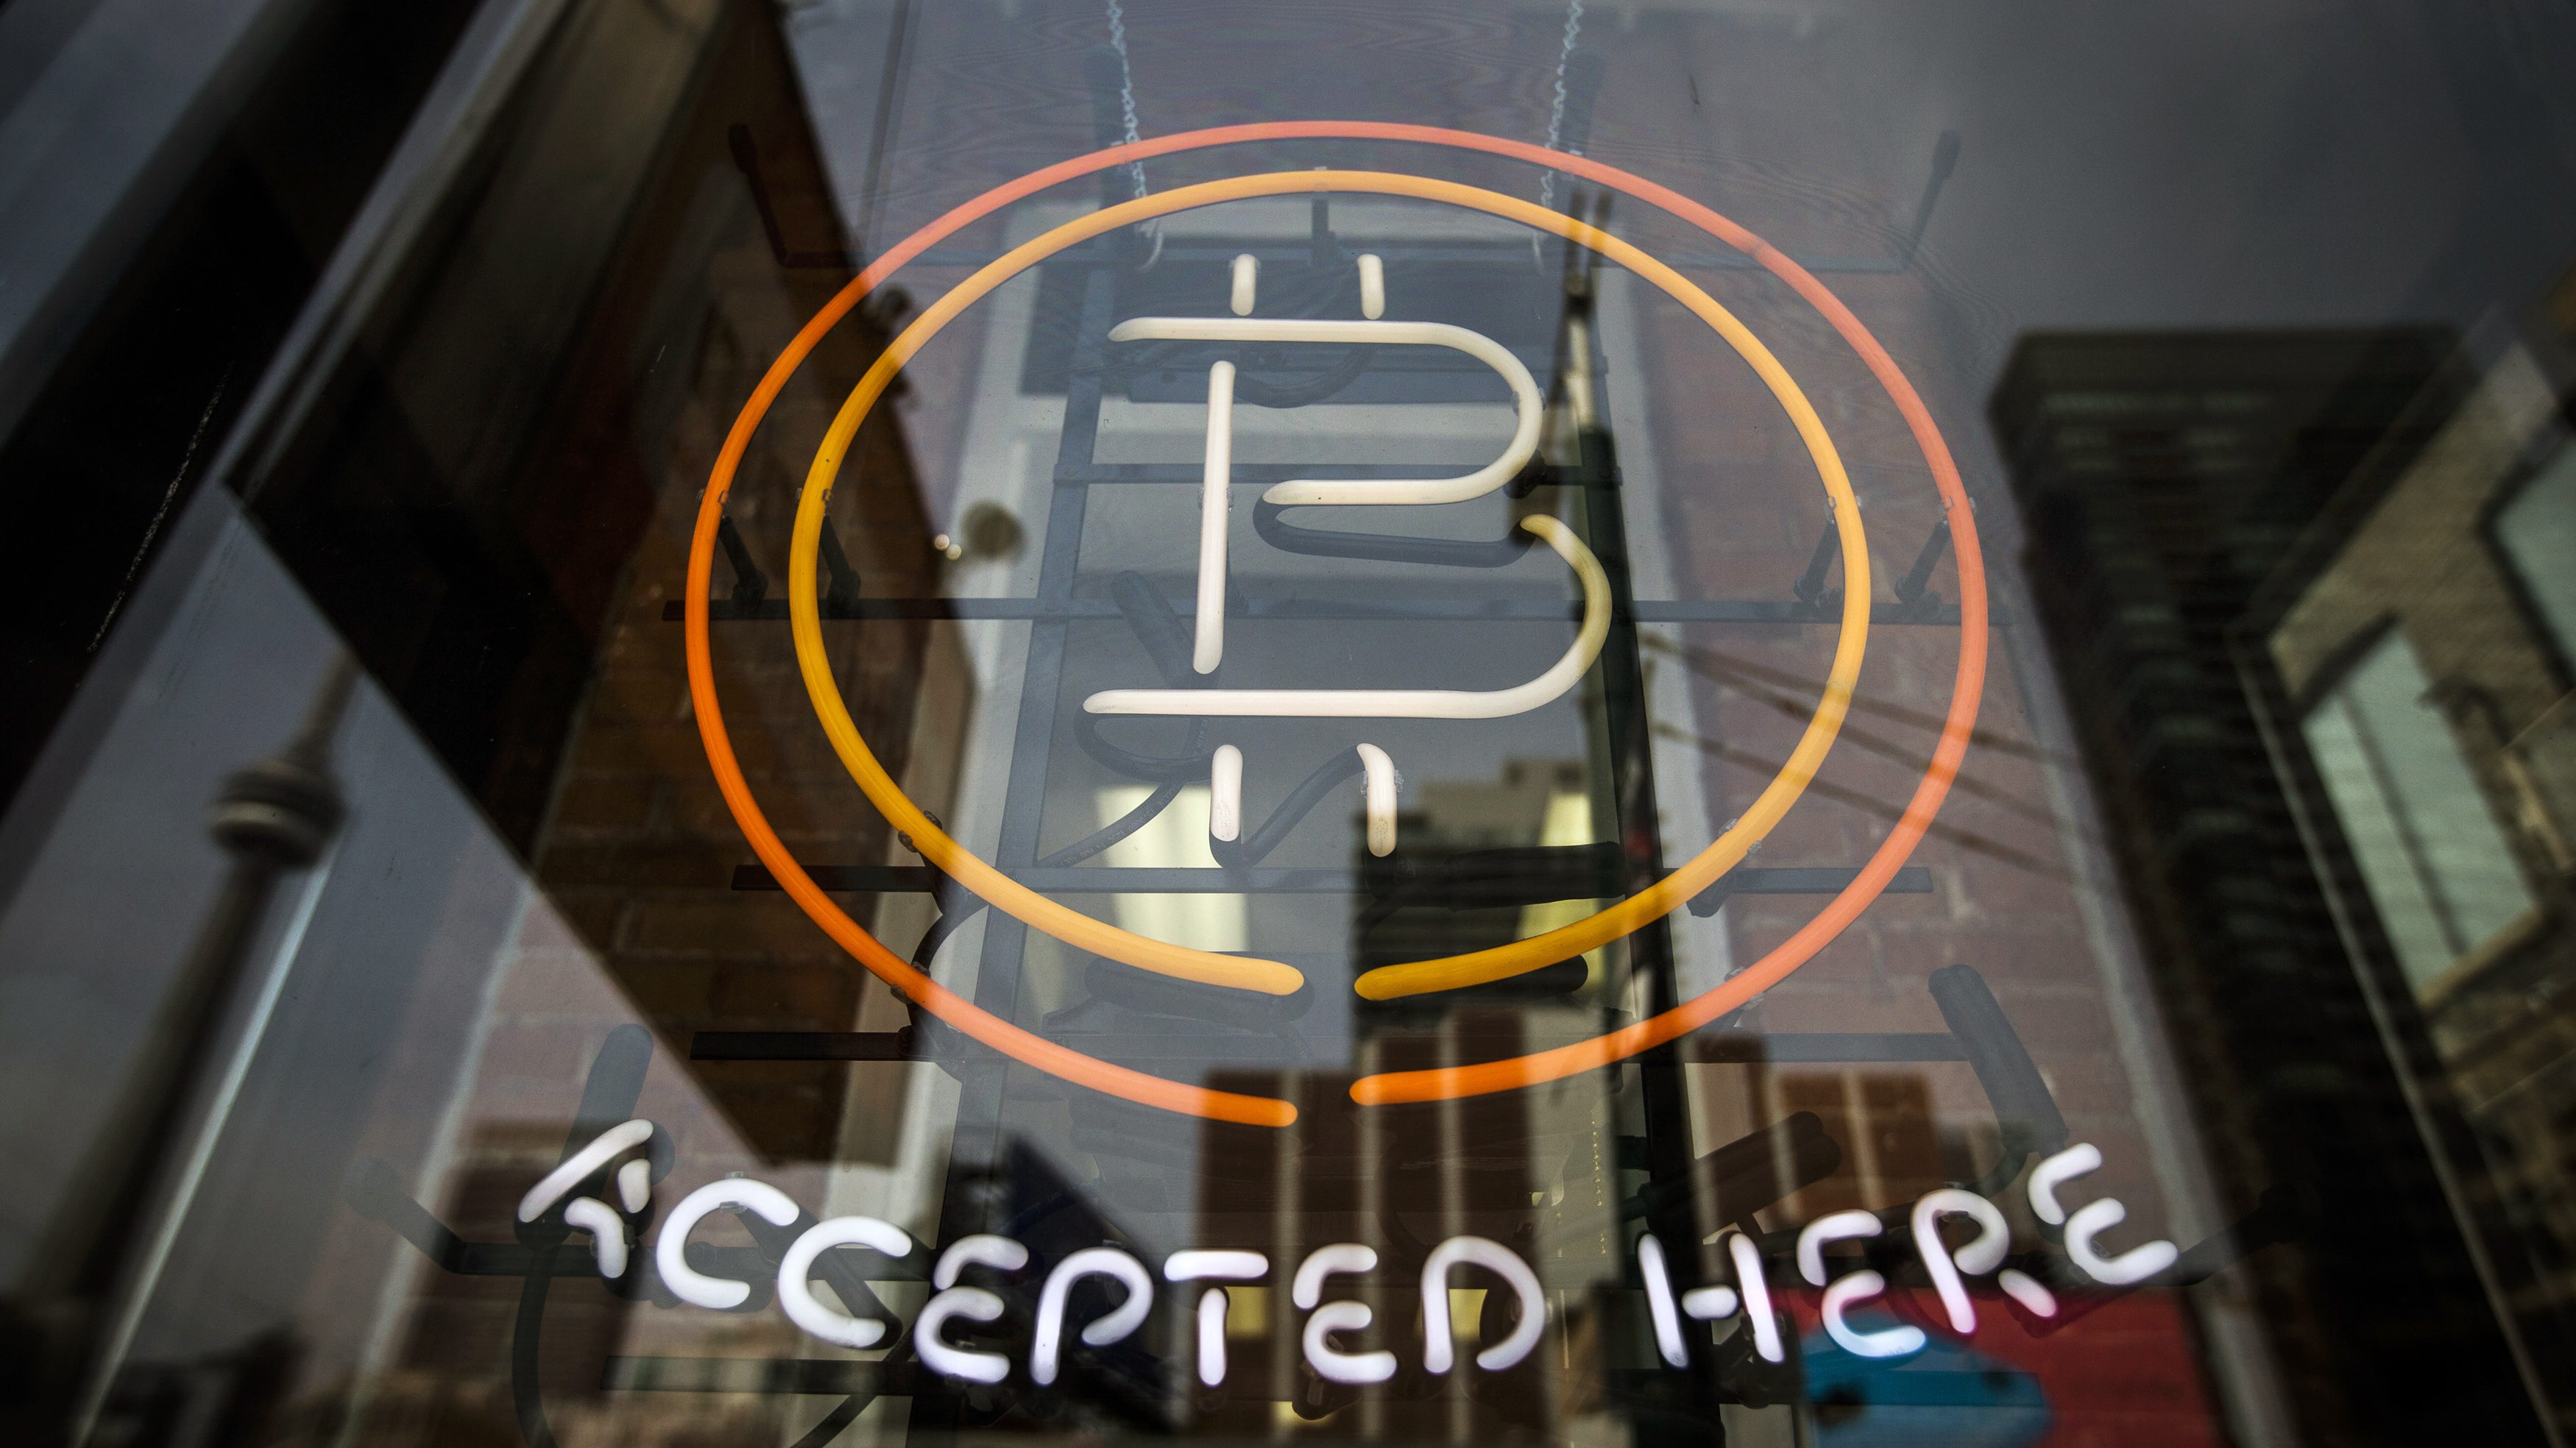 A Bitcoin sign is seen in a window in Toronto